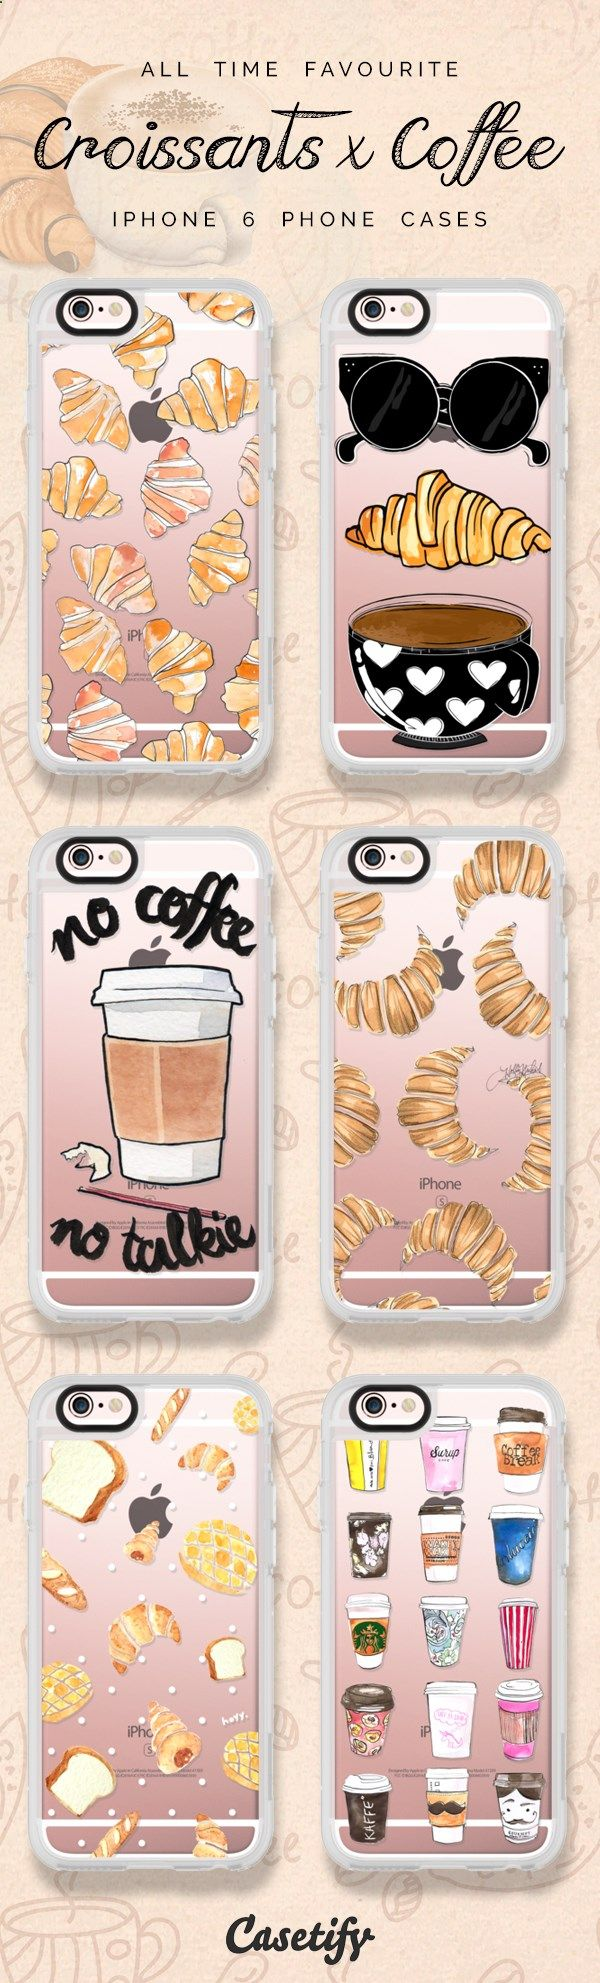 All time favourite coffee and croissant iPhone 6 protective phone case designs | Click through to see more iPhone phone case designs >>> www.casetify.com/... #food | Casetify Cell Phone, Cases & Covers... http://www.ebay.com/sch/i.html?_from=R40&_trksid=p4712.m570.l1313.TR10.TRC0.A0.H1.Xcell+phone+cases+and+covers.TRS0&_nkw=cell+phone+cases+and+covers&_sacat=0